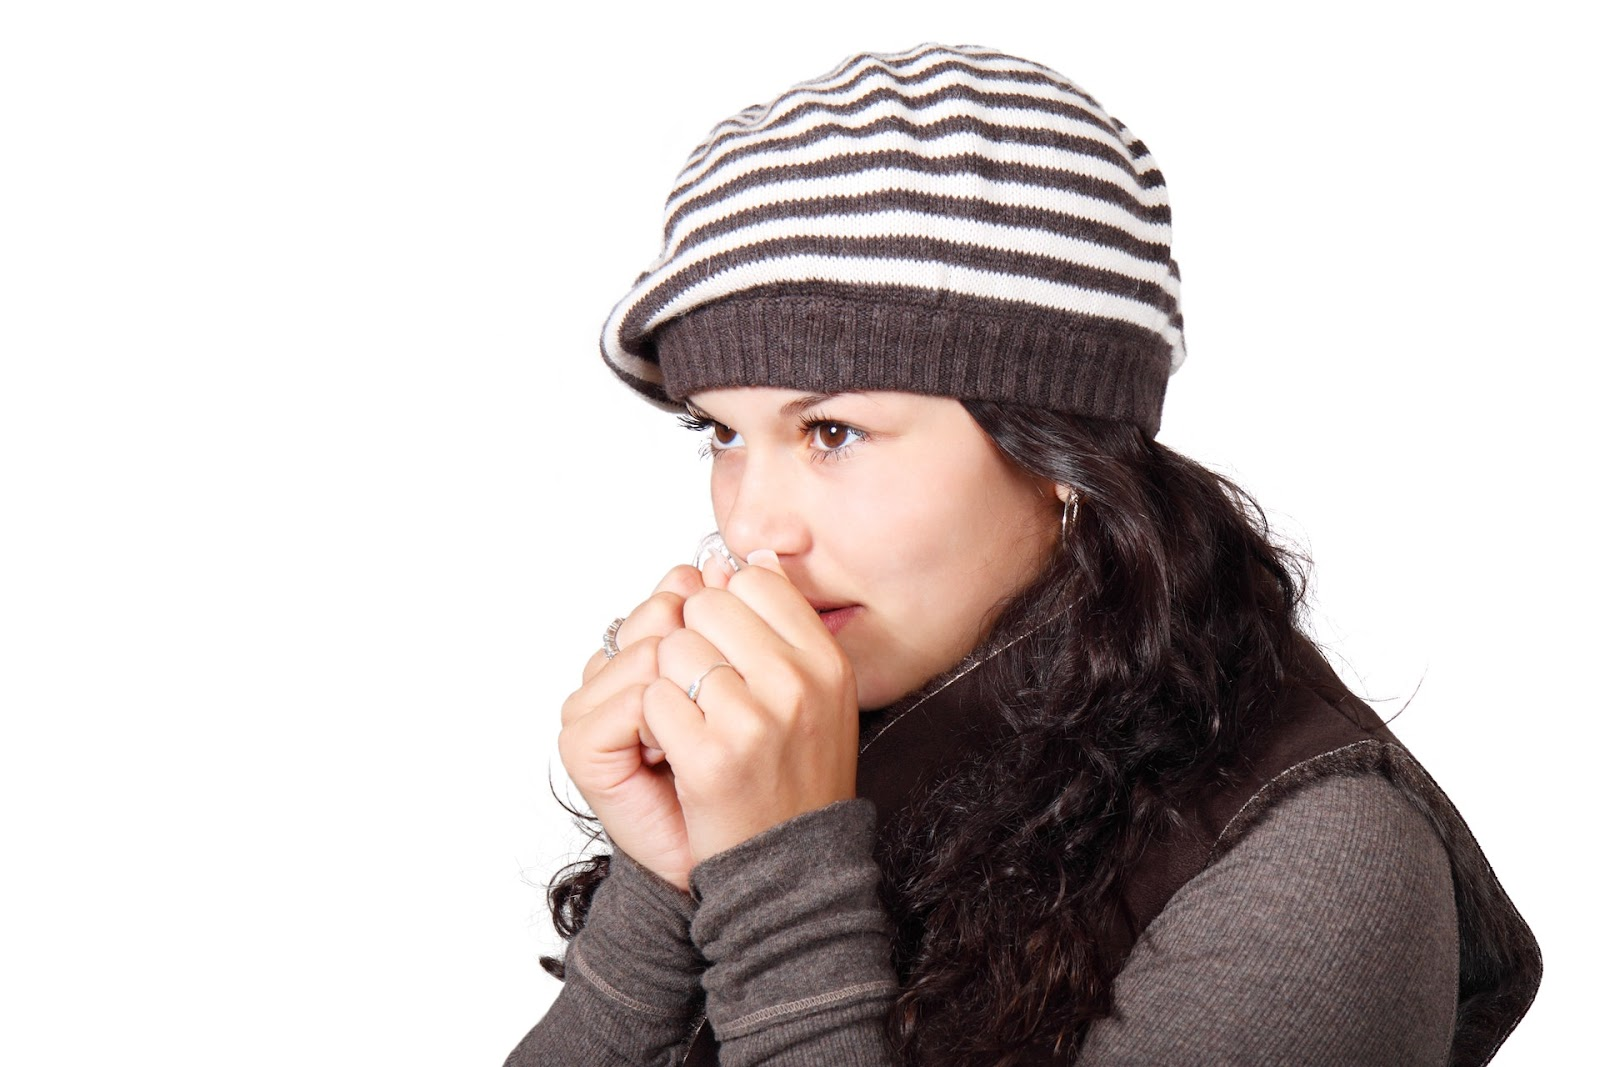 A woman wearing warm clothes appears to be blowing on her hands to warm them.